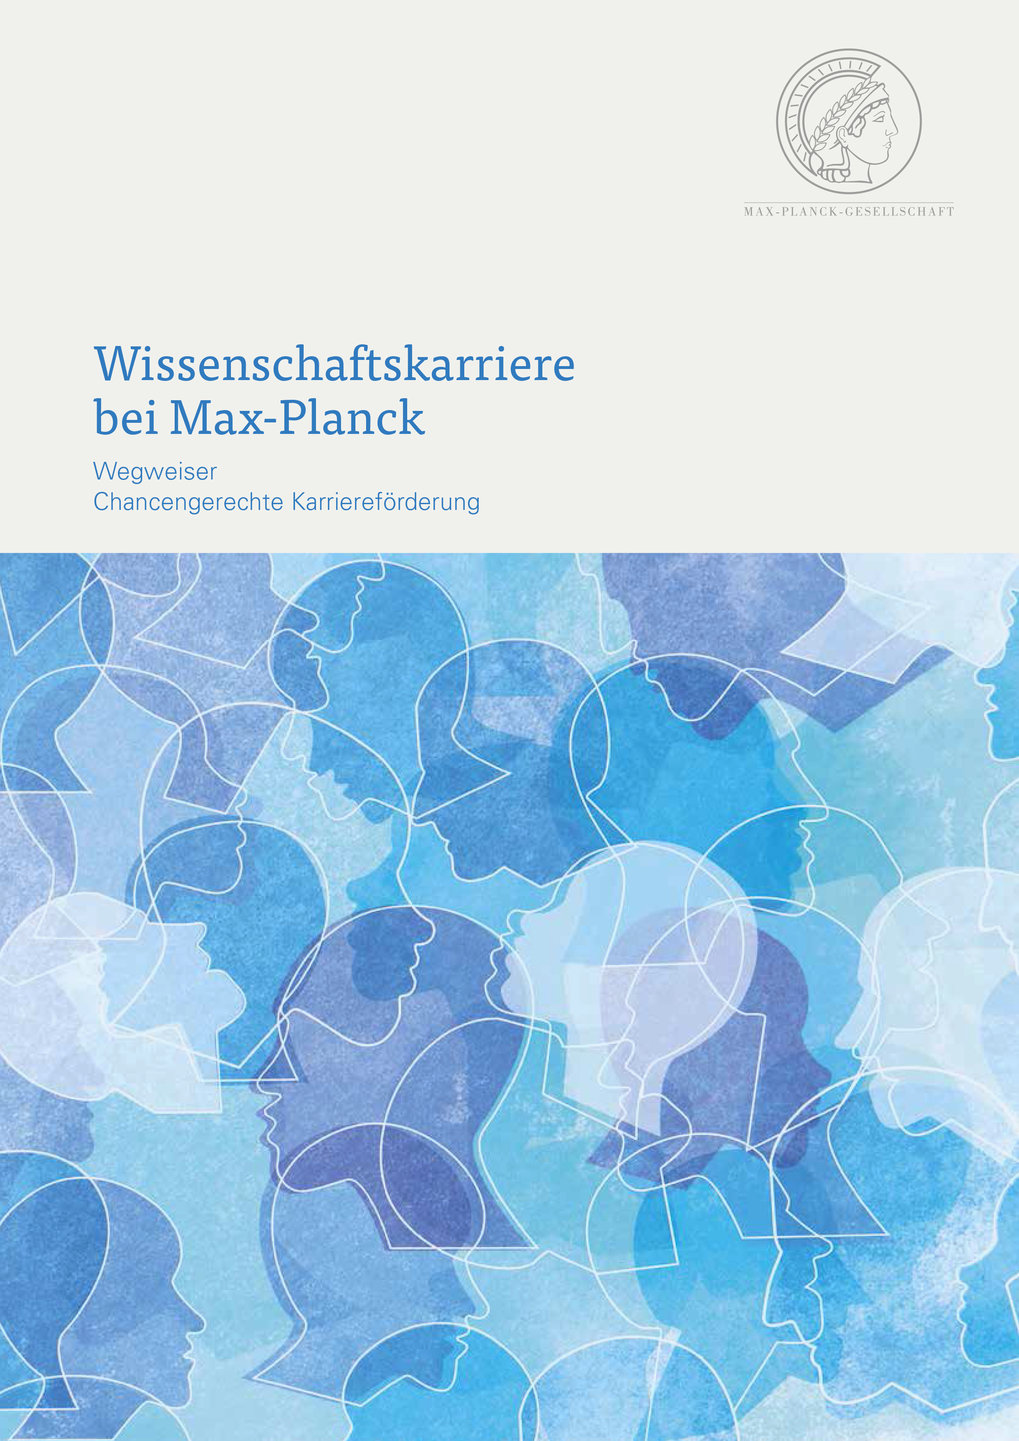 Equality opportunities and career development within the Max Planck Society